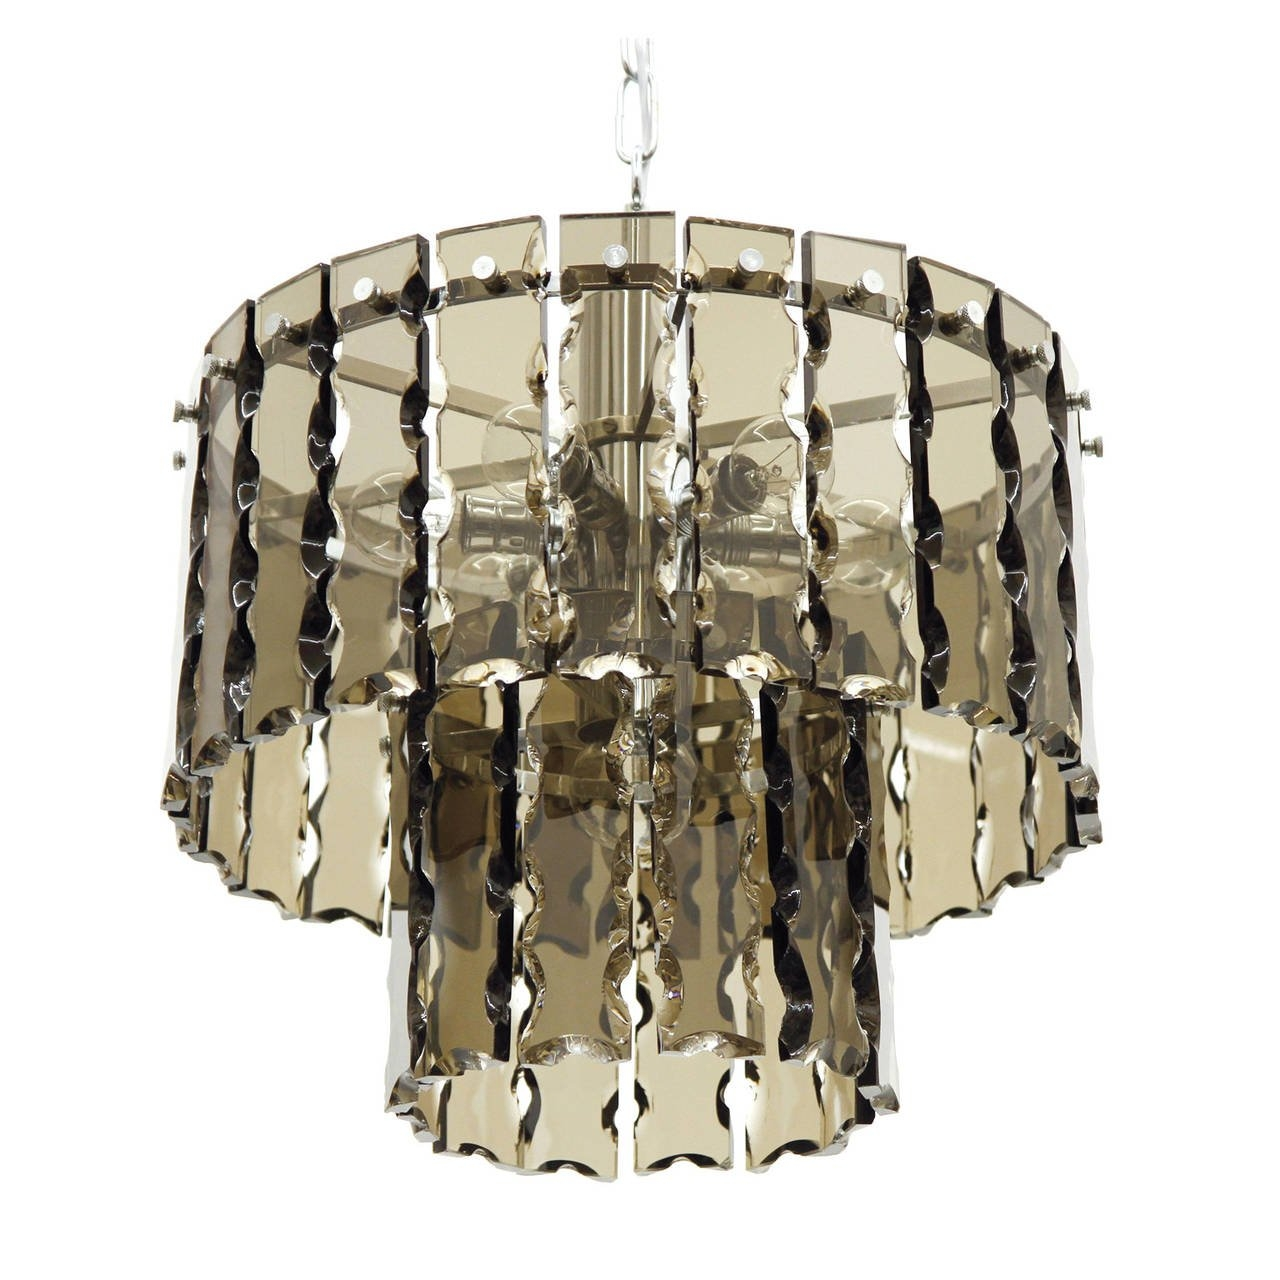 Fontana Arte Style Two Tier Smoke Glass Chandelier For Sale At 1stdibs Inside Smoked Glass Chandelier (#5 of 12)